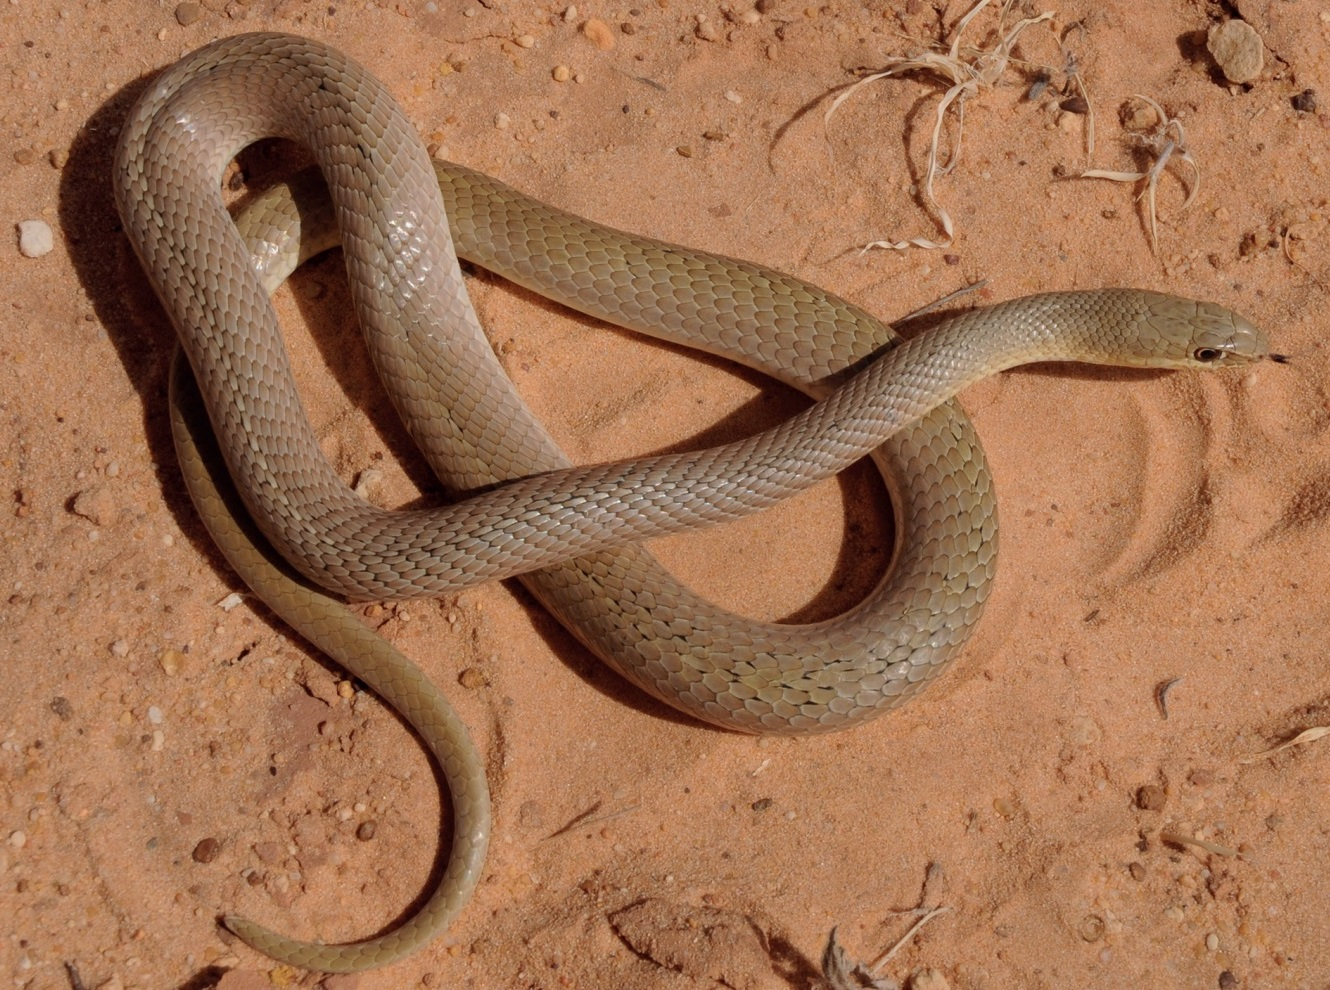 Psammophis afroccidentalis